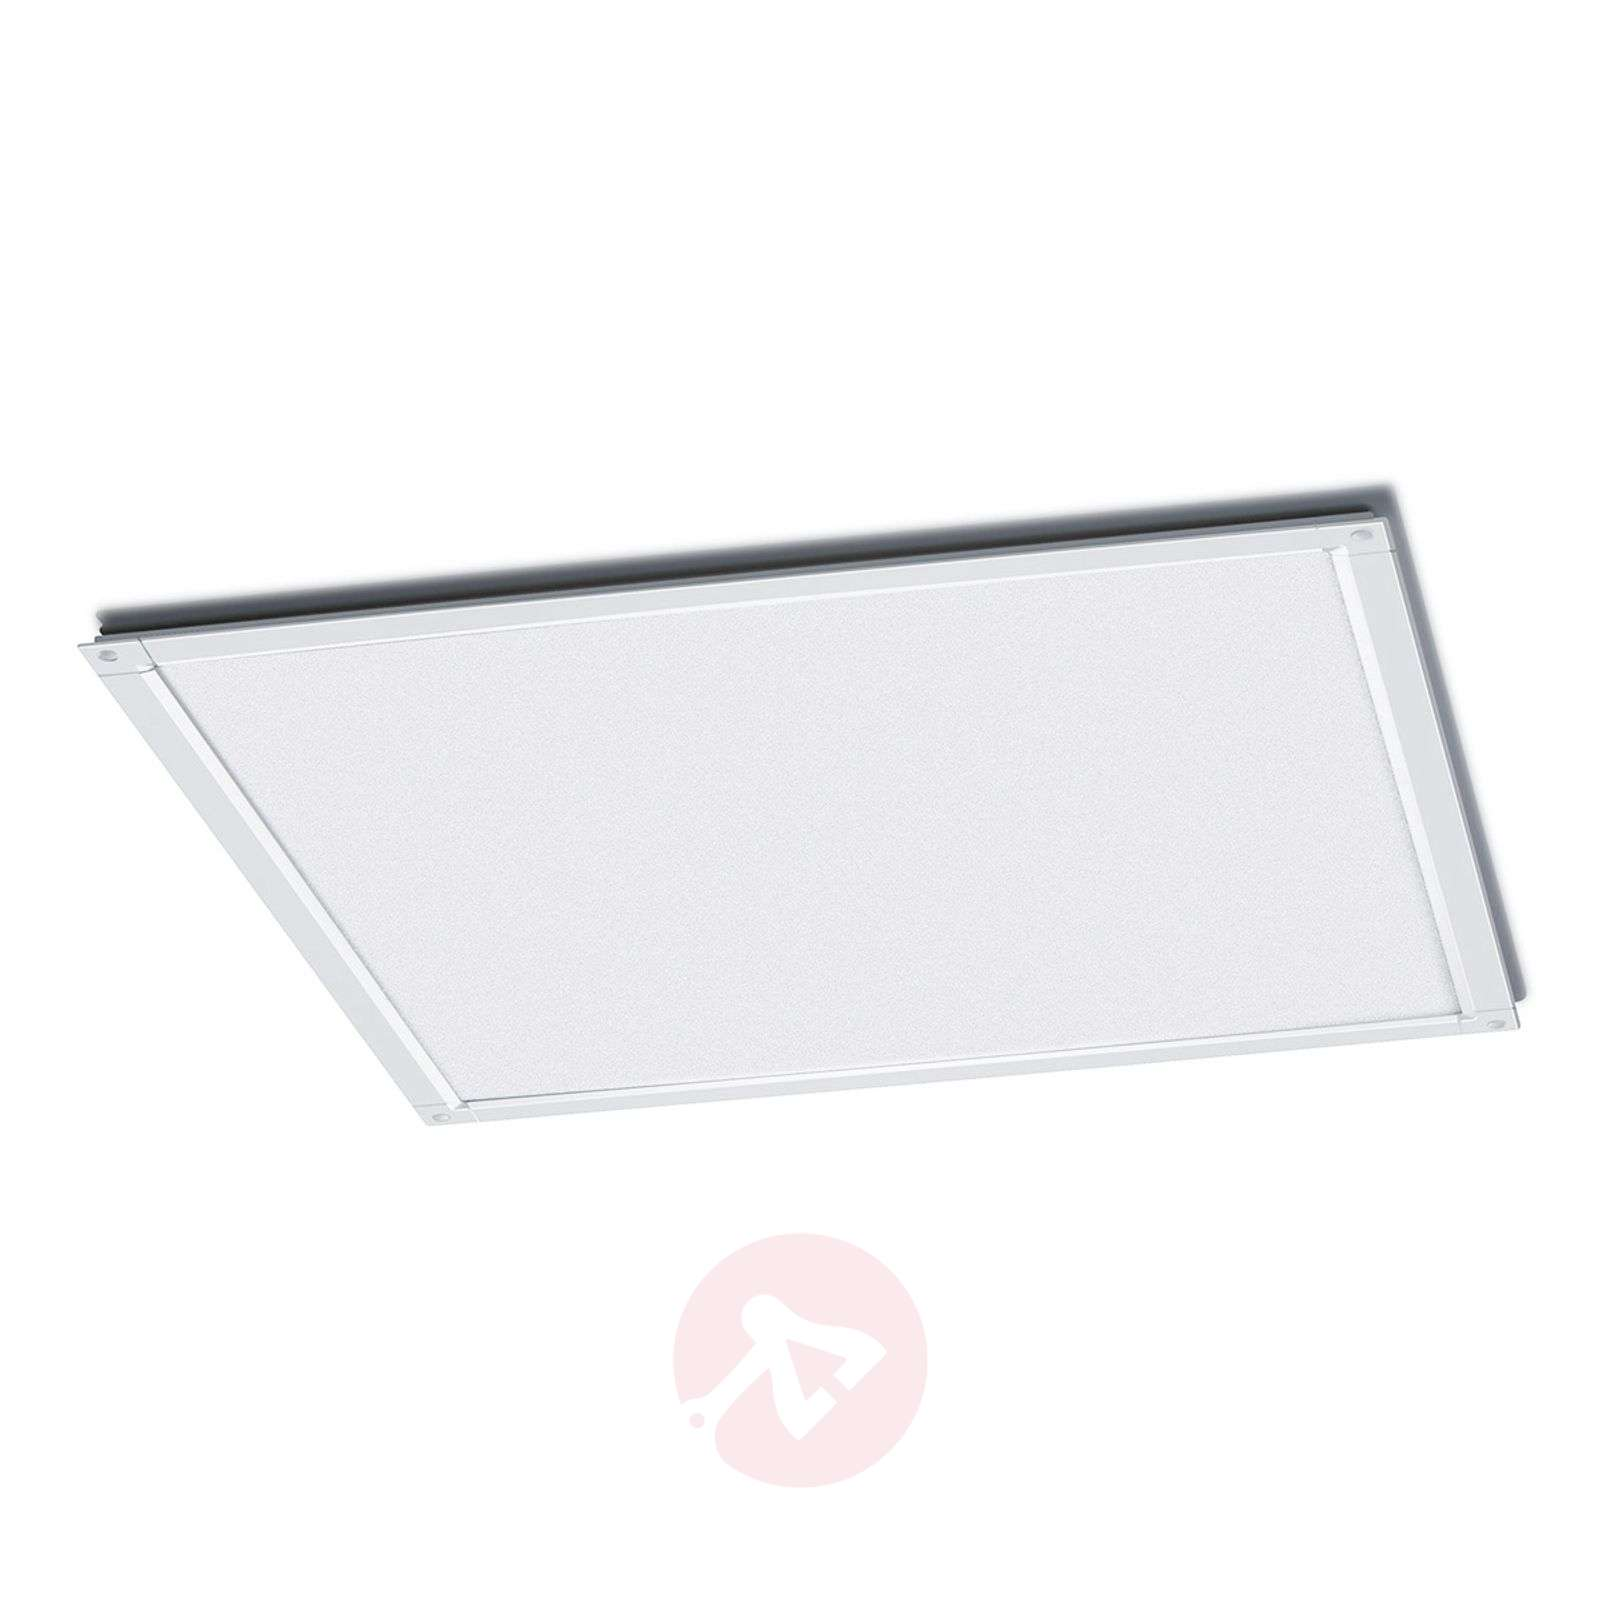 LED-paneel EC 620-54W ook v. systeempl. 62 x 62 cm-6084001X-01